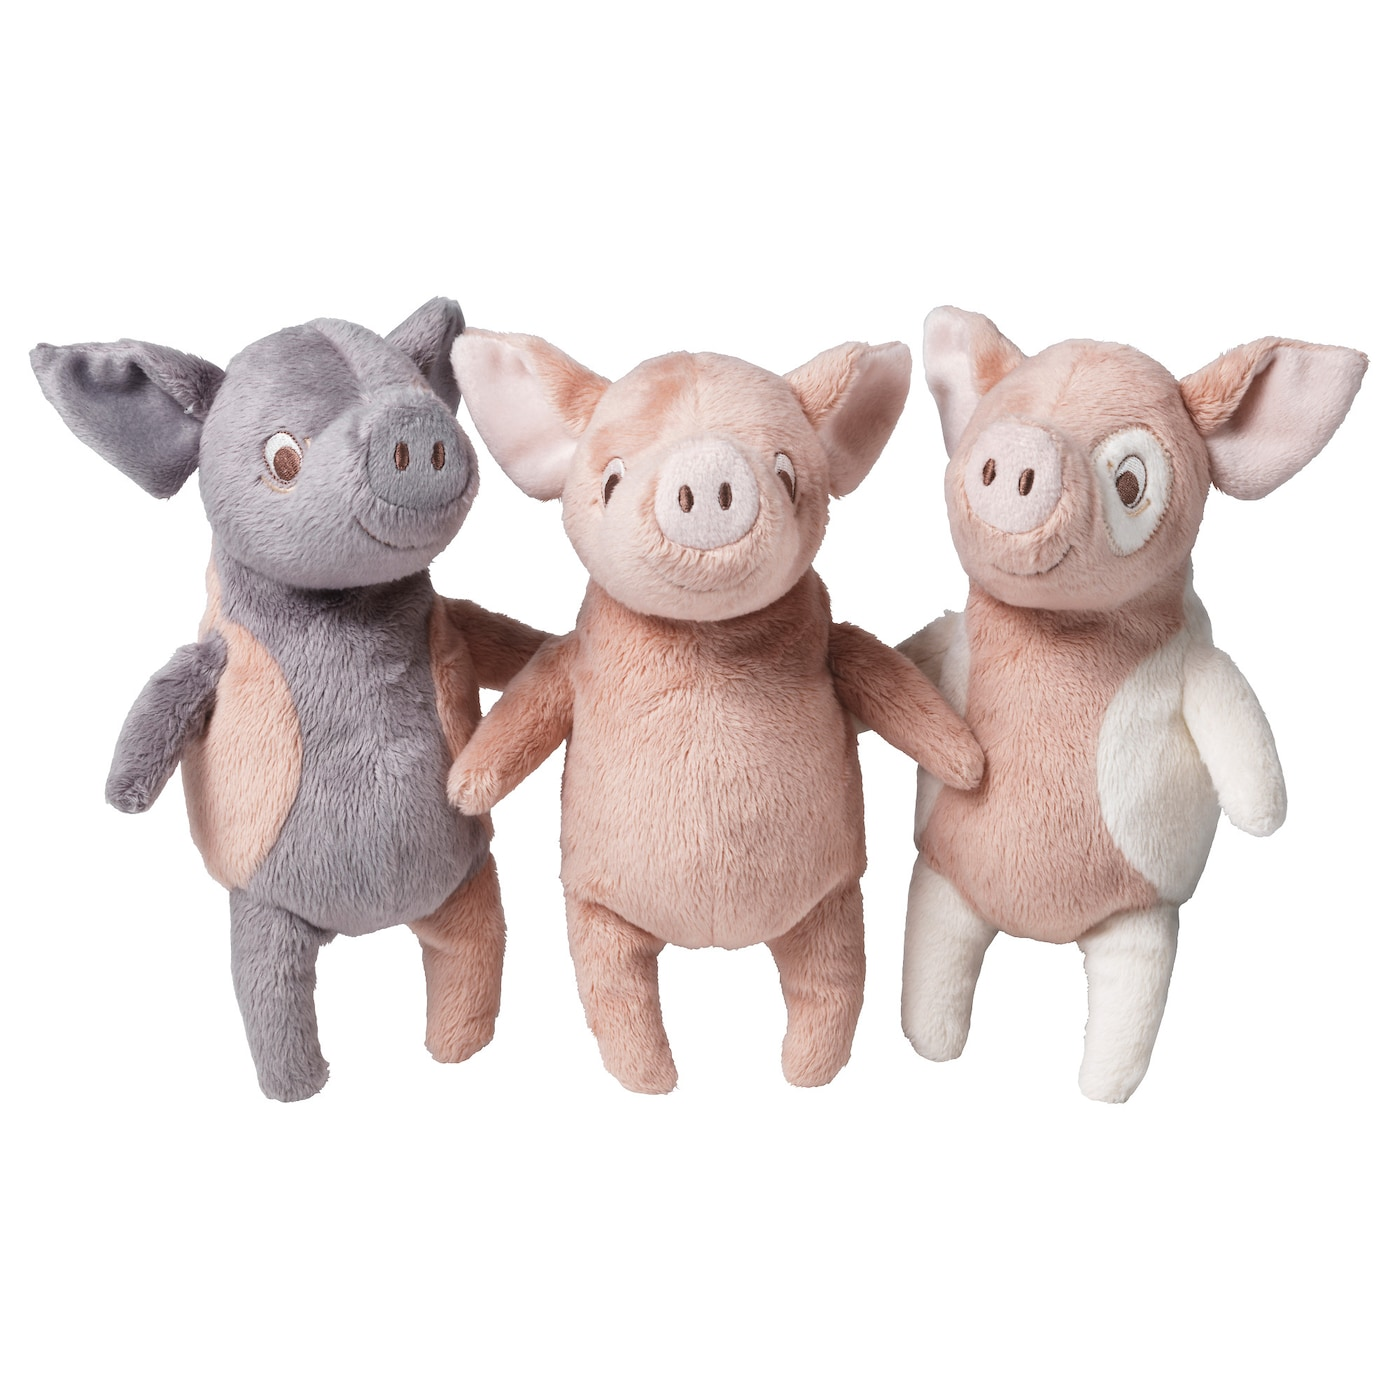 Soft Toys Cuddly Stuffed Animals IKEA